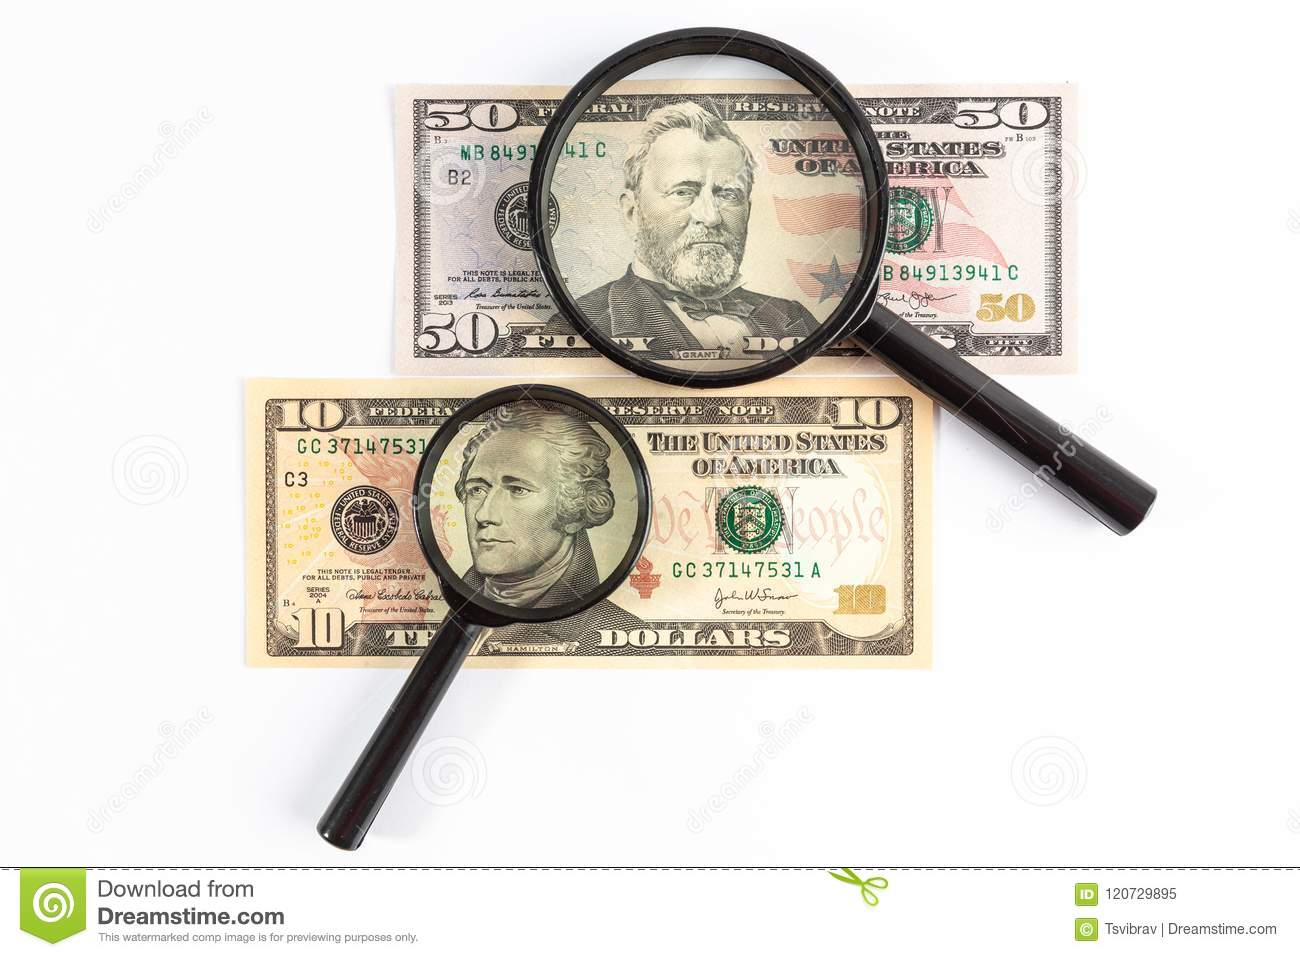 Magnifying glass placed on US dollar bills.